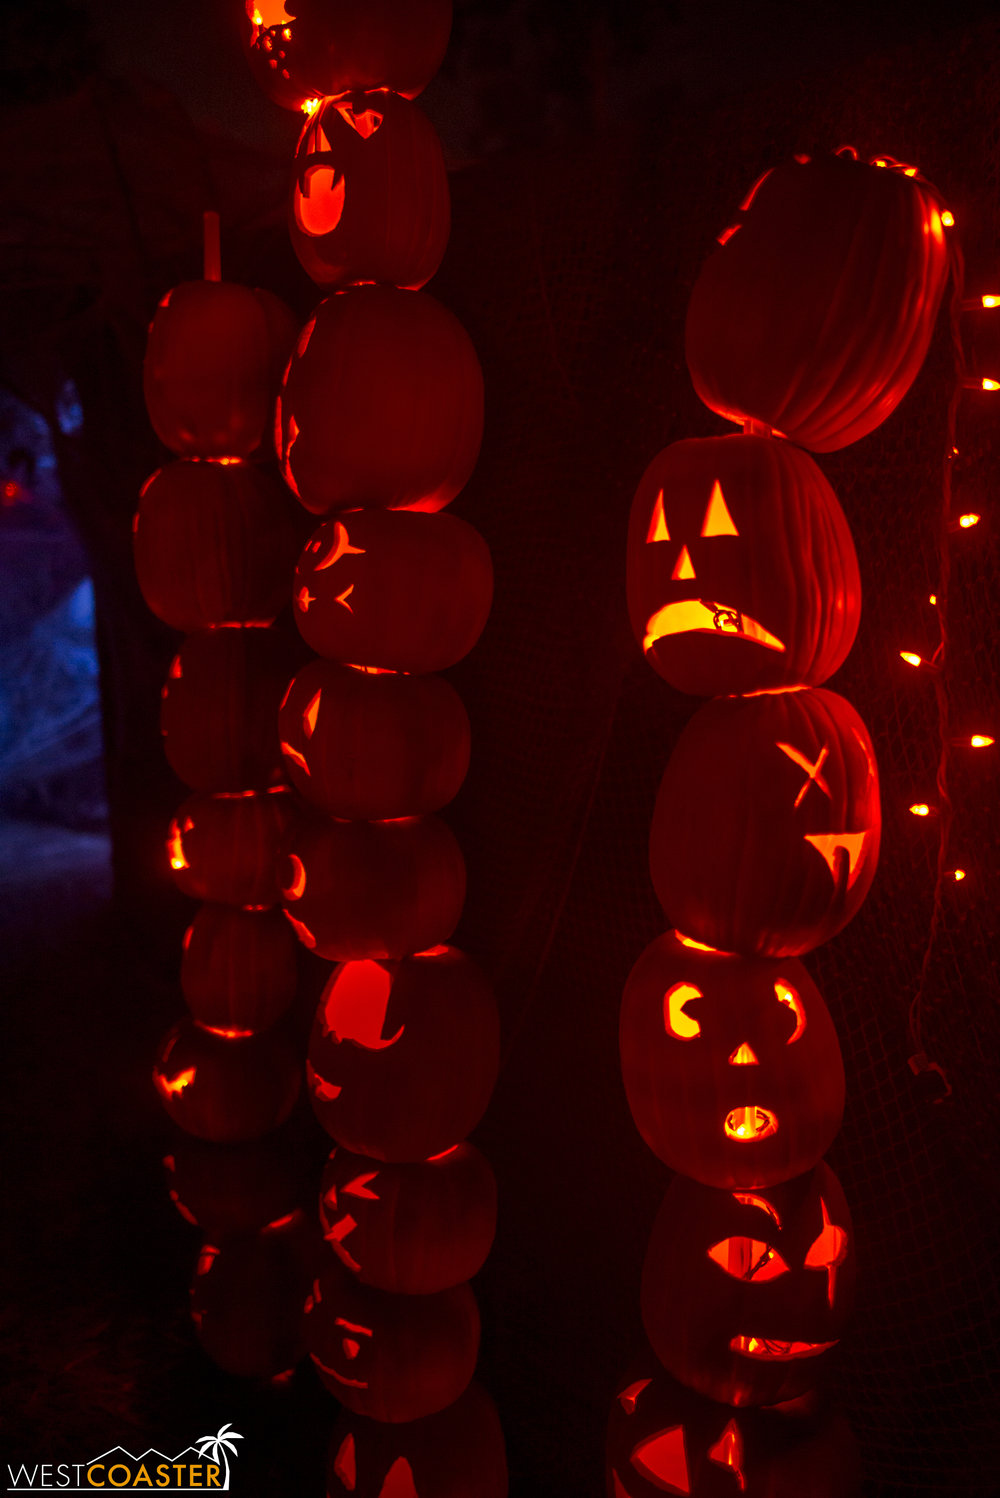 More jack-o-lantern towers.